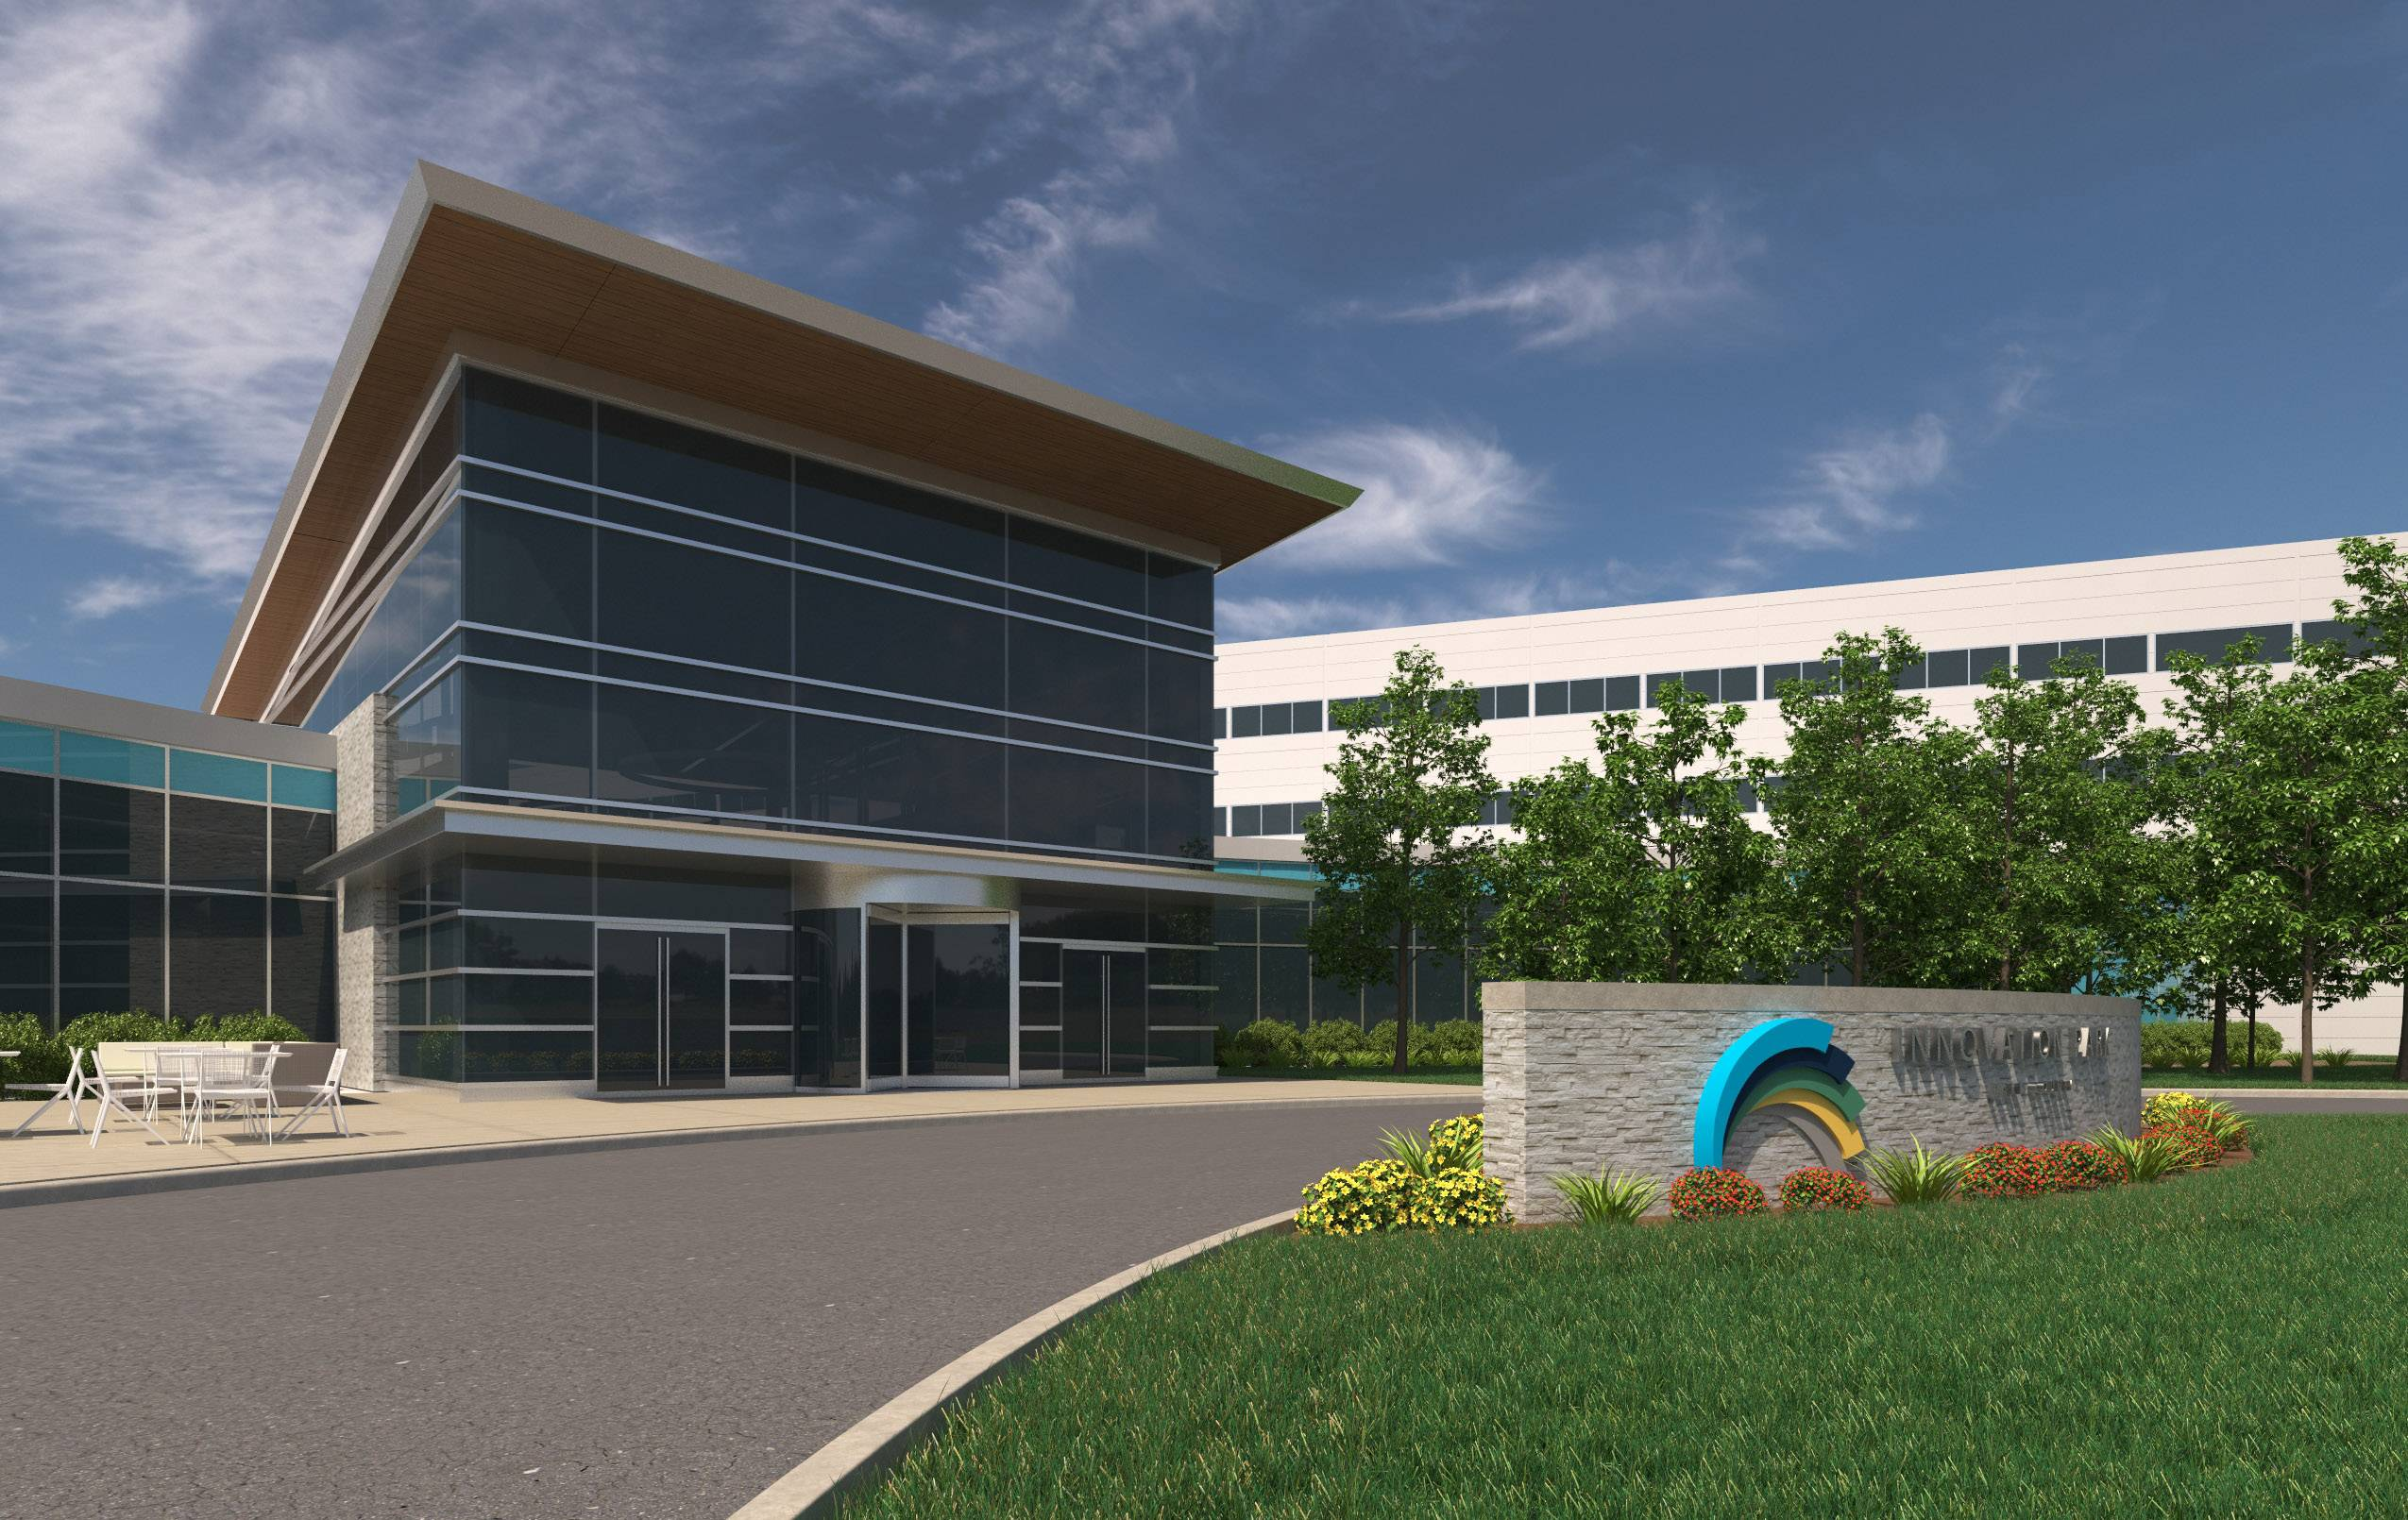 Developer promises unique workplace on ex-Motorola campus in Libertyville